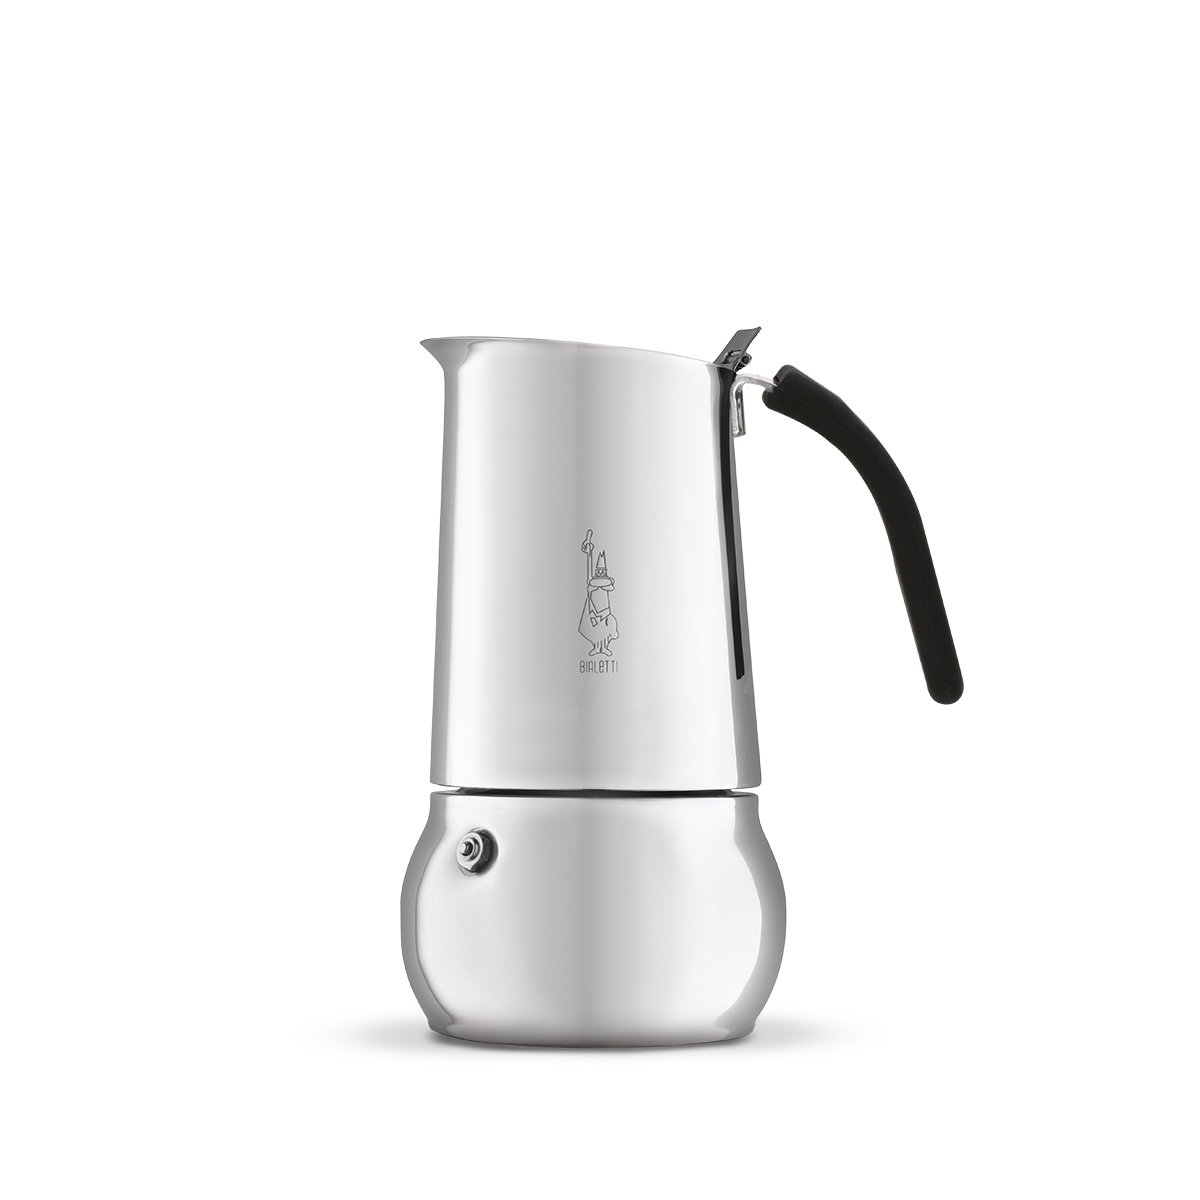 Bialetti Kitty Coffee Maker, Stainless Steel, 4-Cup(8 oz) (06660)